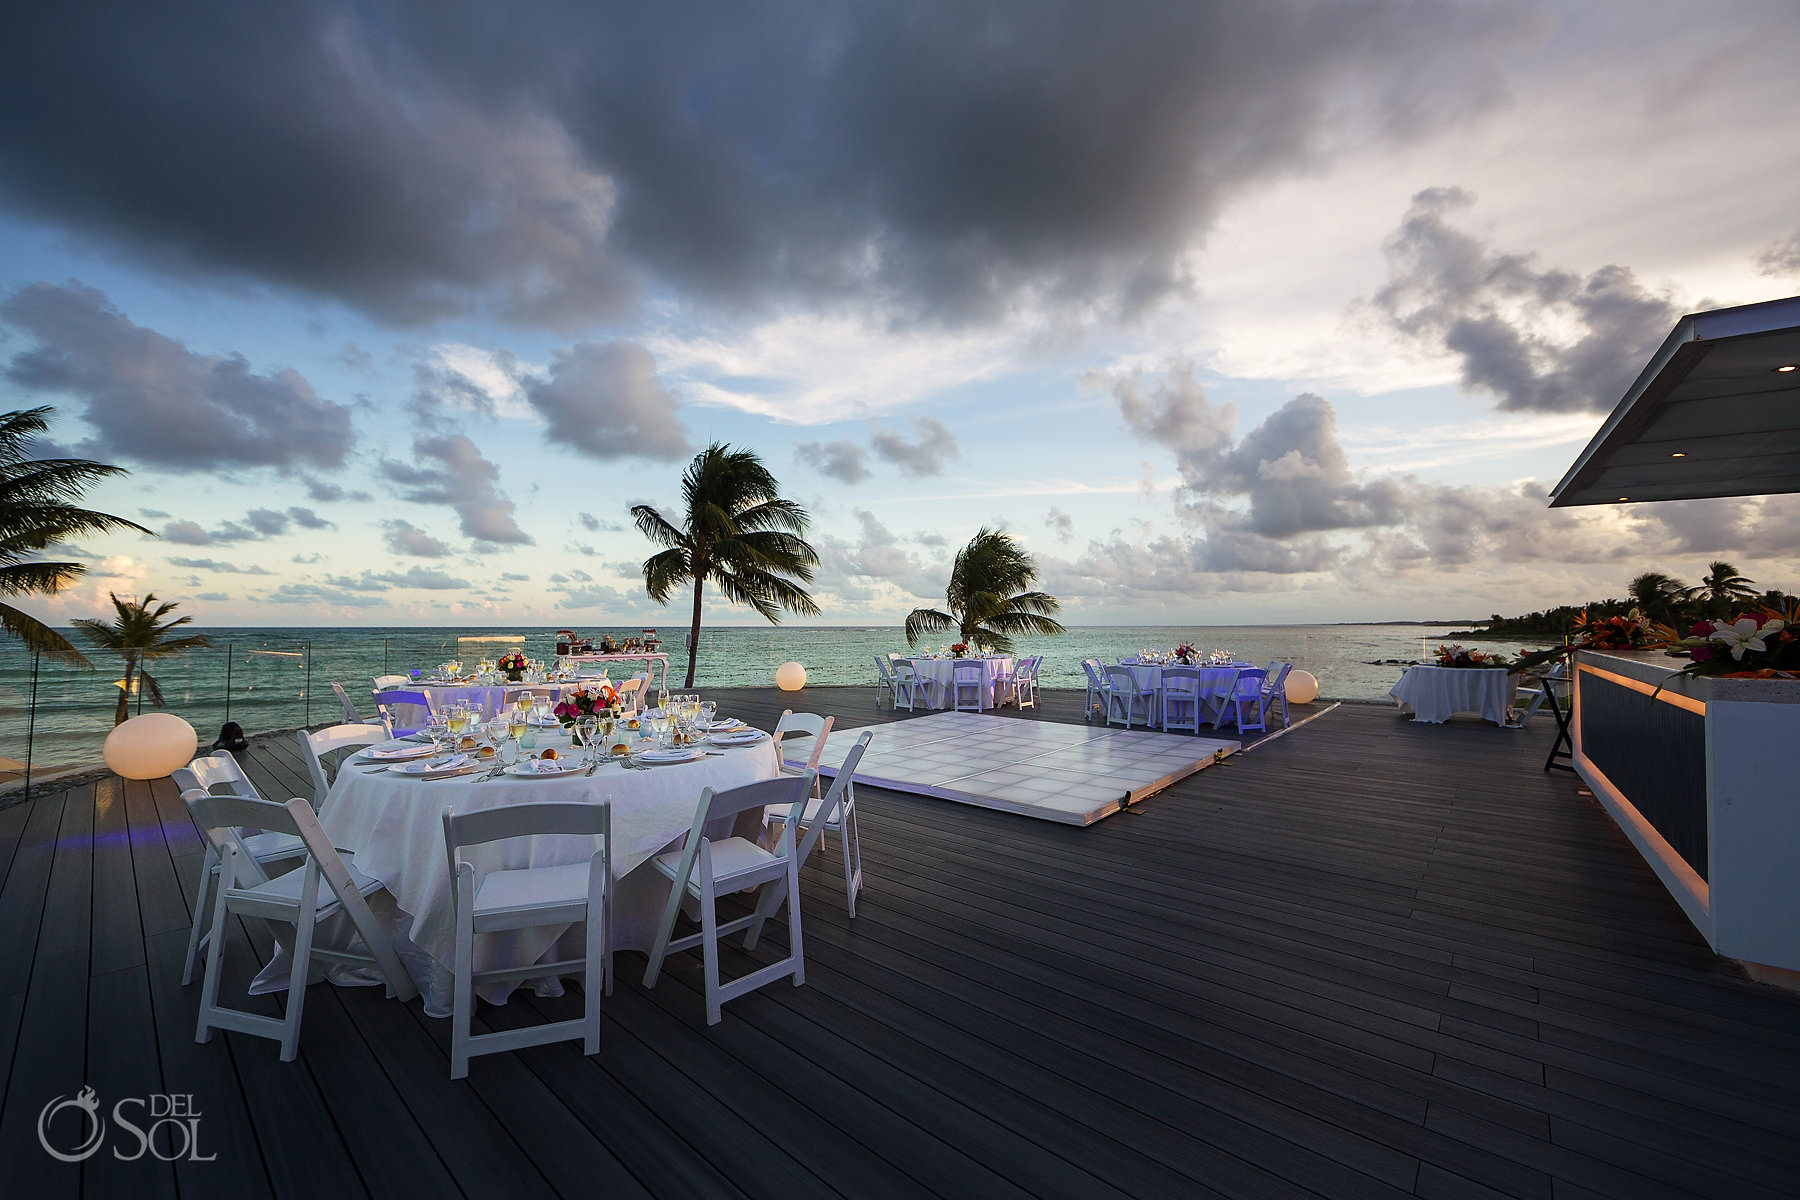 dreams tulum wedding sunset terrace decorations